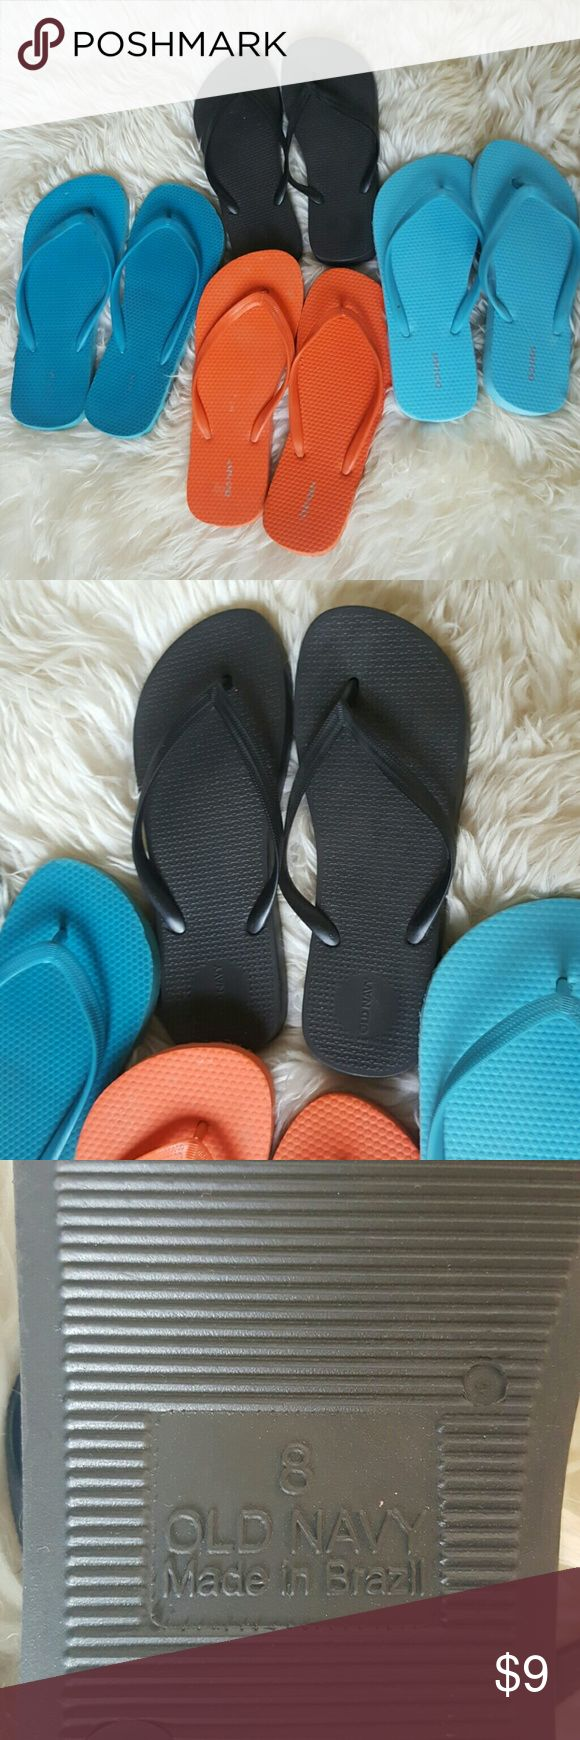 """Old Navy Flip Flop Bundle 4 sets of Old Navy flip flops. Orange, light blue and shimmery black are brand new - Darker blue has been worn a couple of times but in good condition - Orange, light blue and dark blue Size """"7-8"""" - Black size 8 - The black sandals are a bit thicker and made out of rubber - Other sandals made out of foam Old Navy Shoes Sandals"""